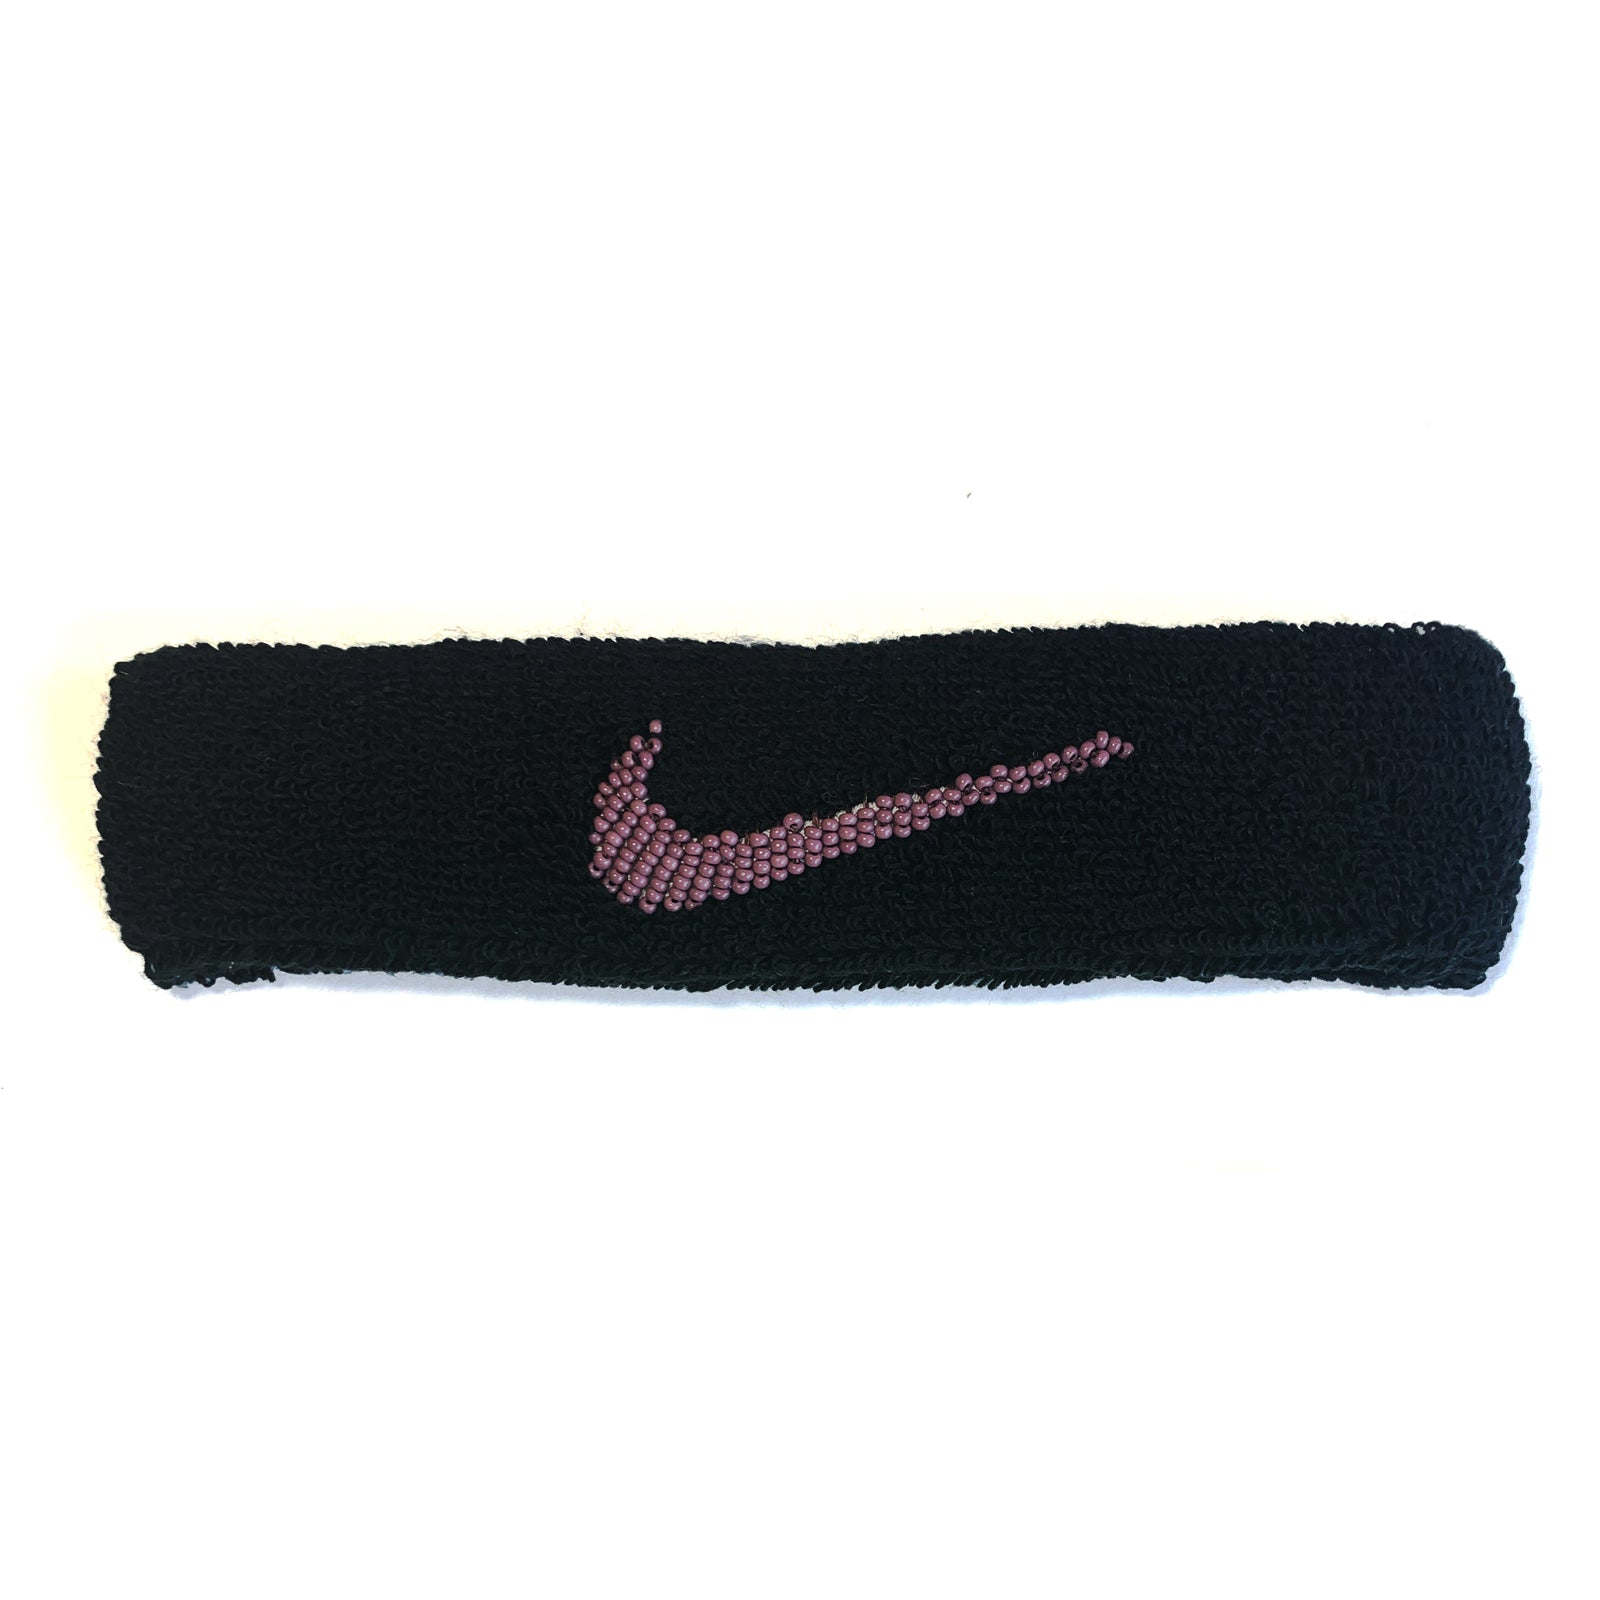 "BANDULU "" ORCHID "" BEADED NIKE HEADBAND"